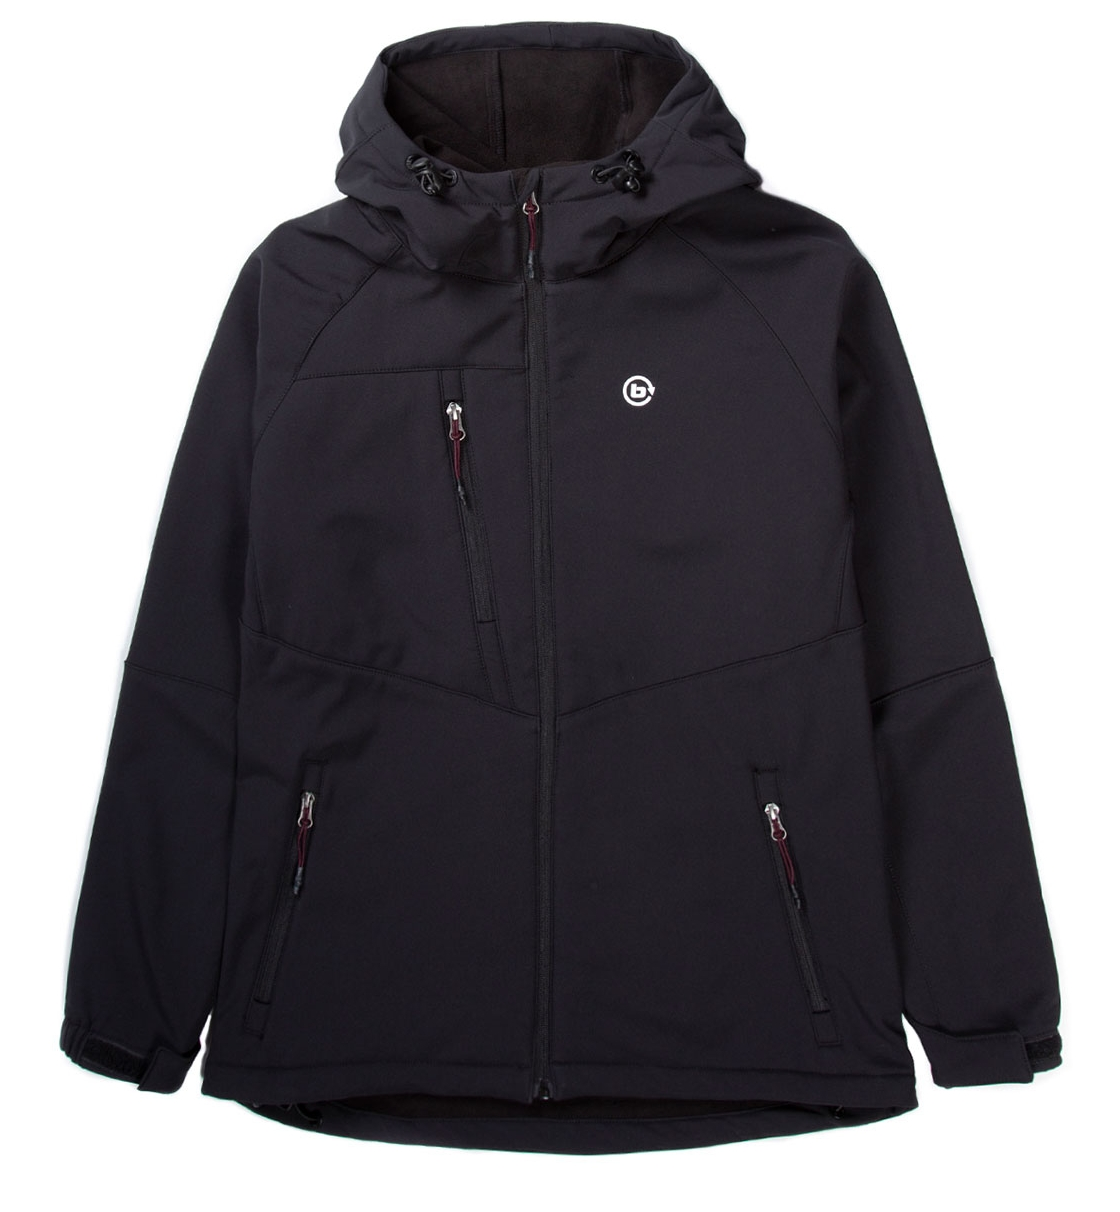 Basehit Ss19 Women'S Soft Shell Jacket With Hood